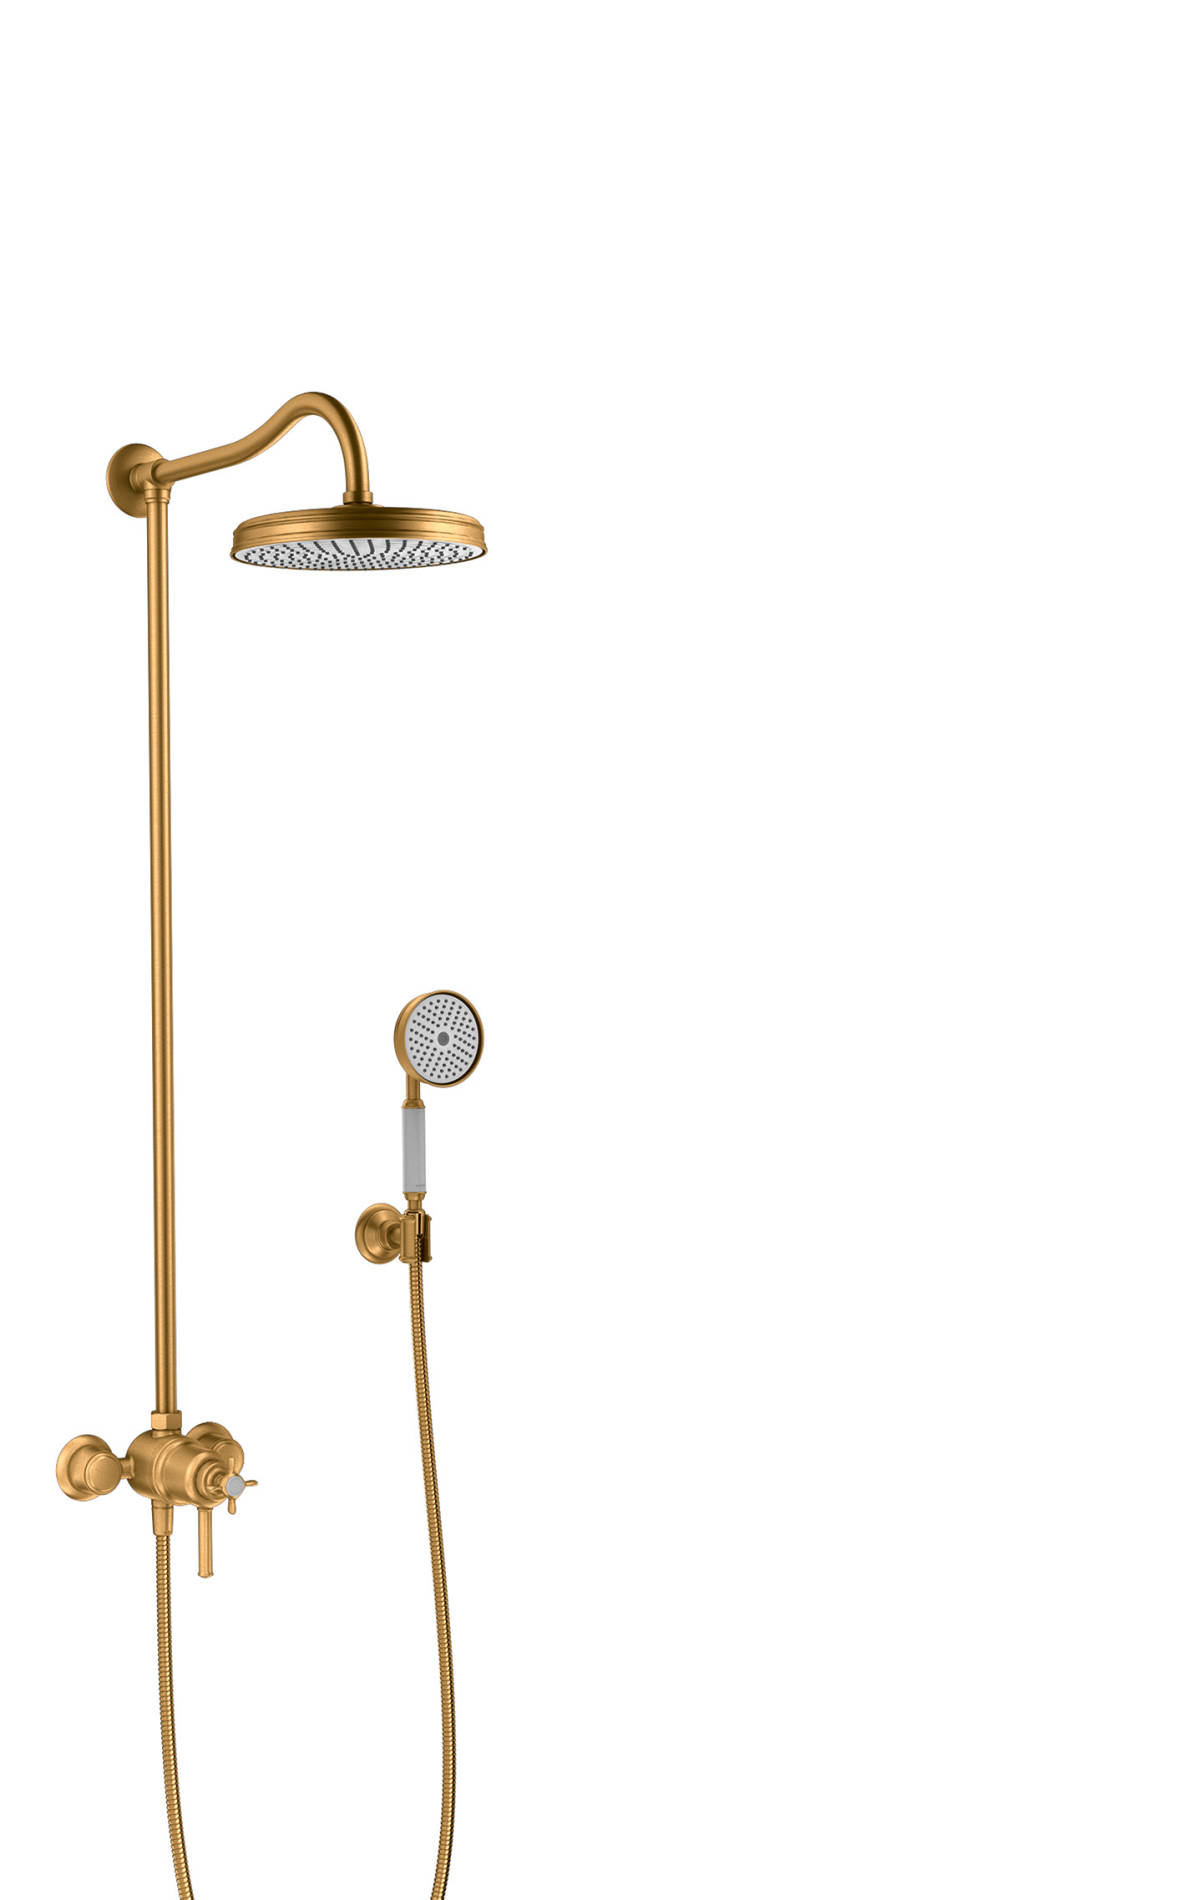 Showerpipe with thermostatic mixer and 1jet overhead shower, Brushed Gold Optic, 16570250